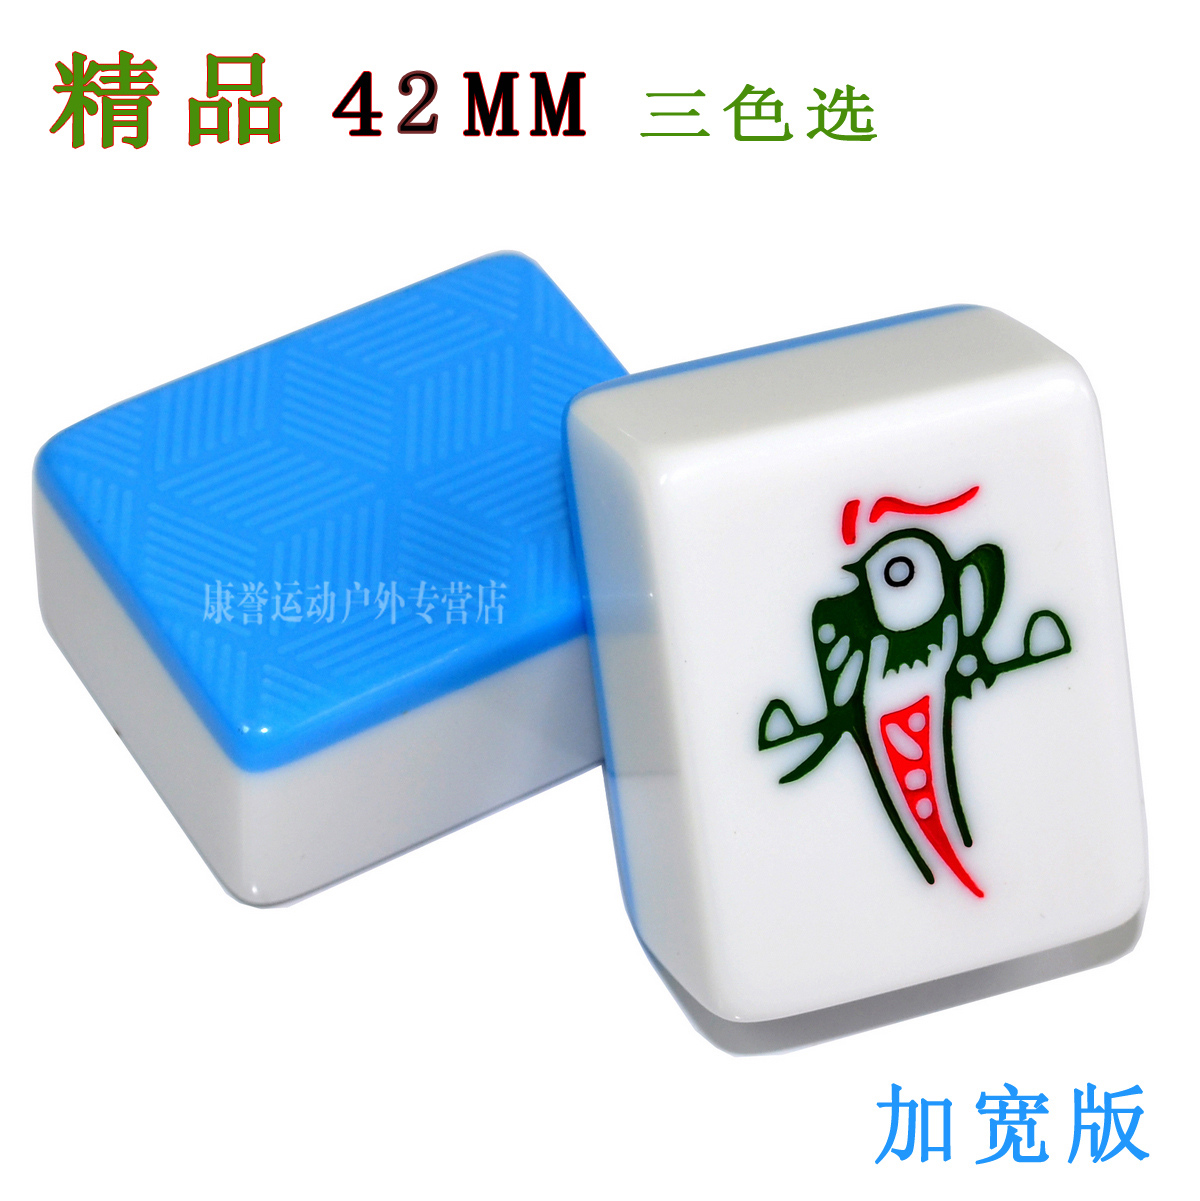 Eight provinces boutique package email 42MM home Queen size bamboo Mahjong tiles add to the widening of the original guarantee